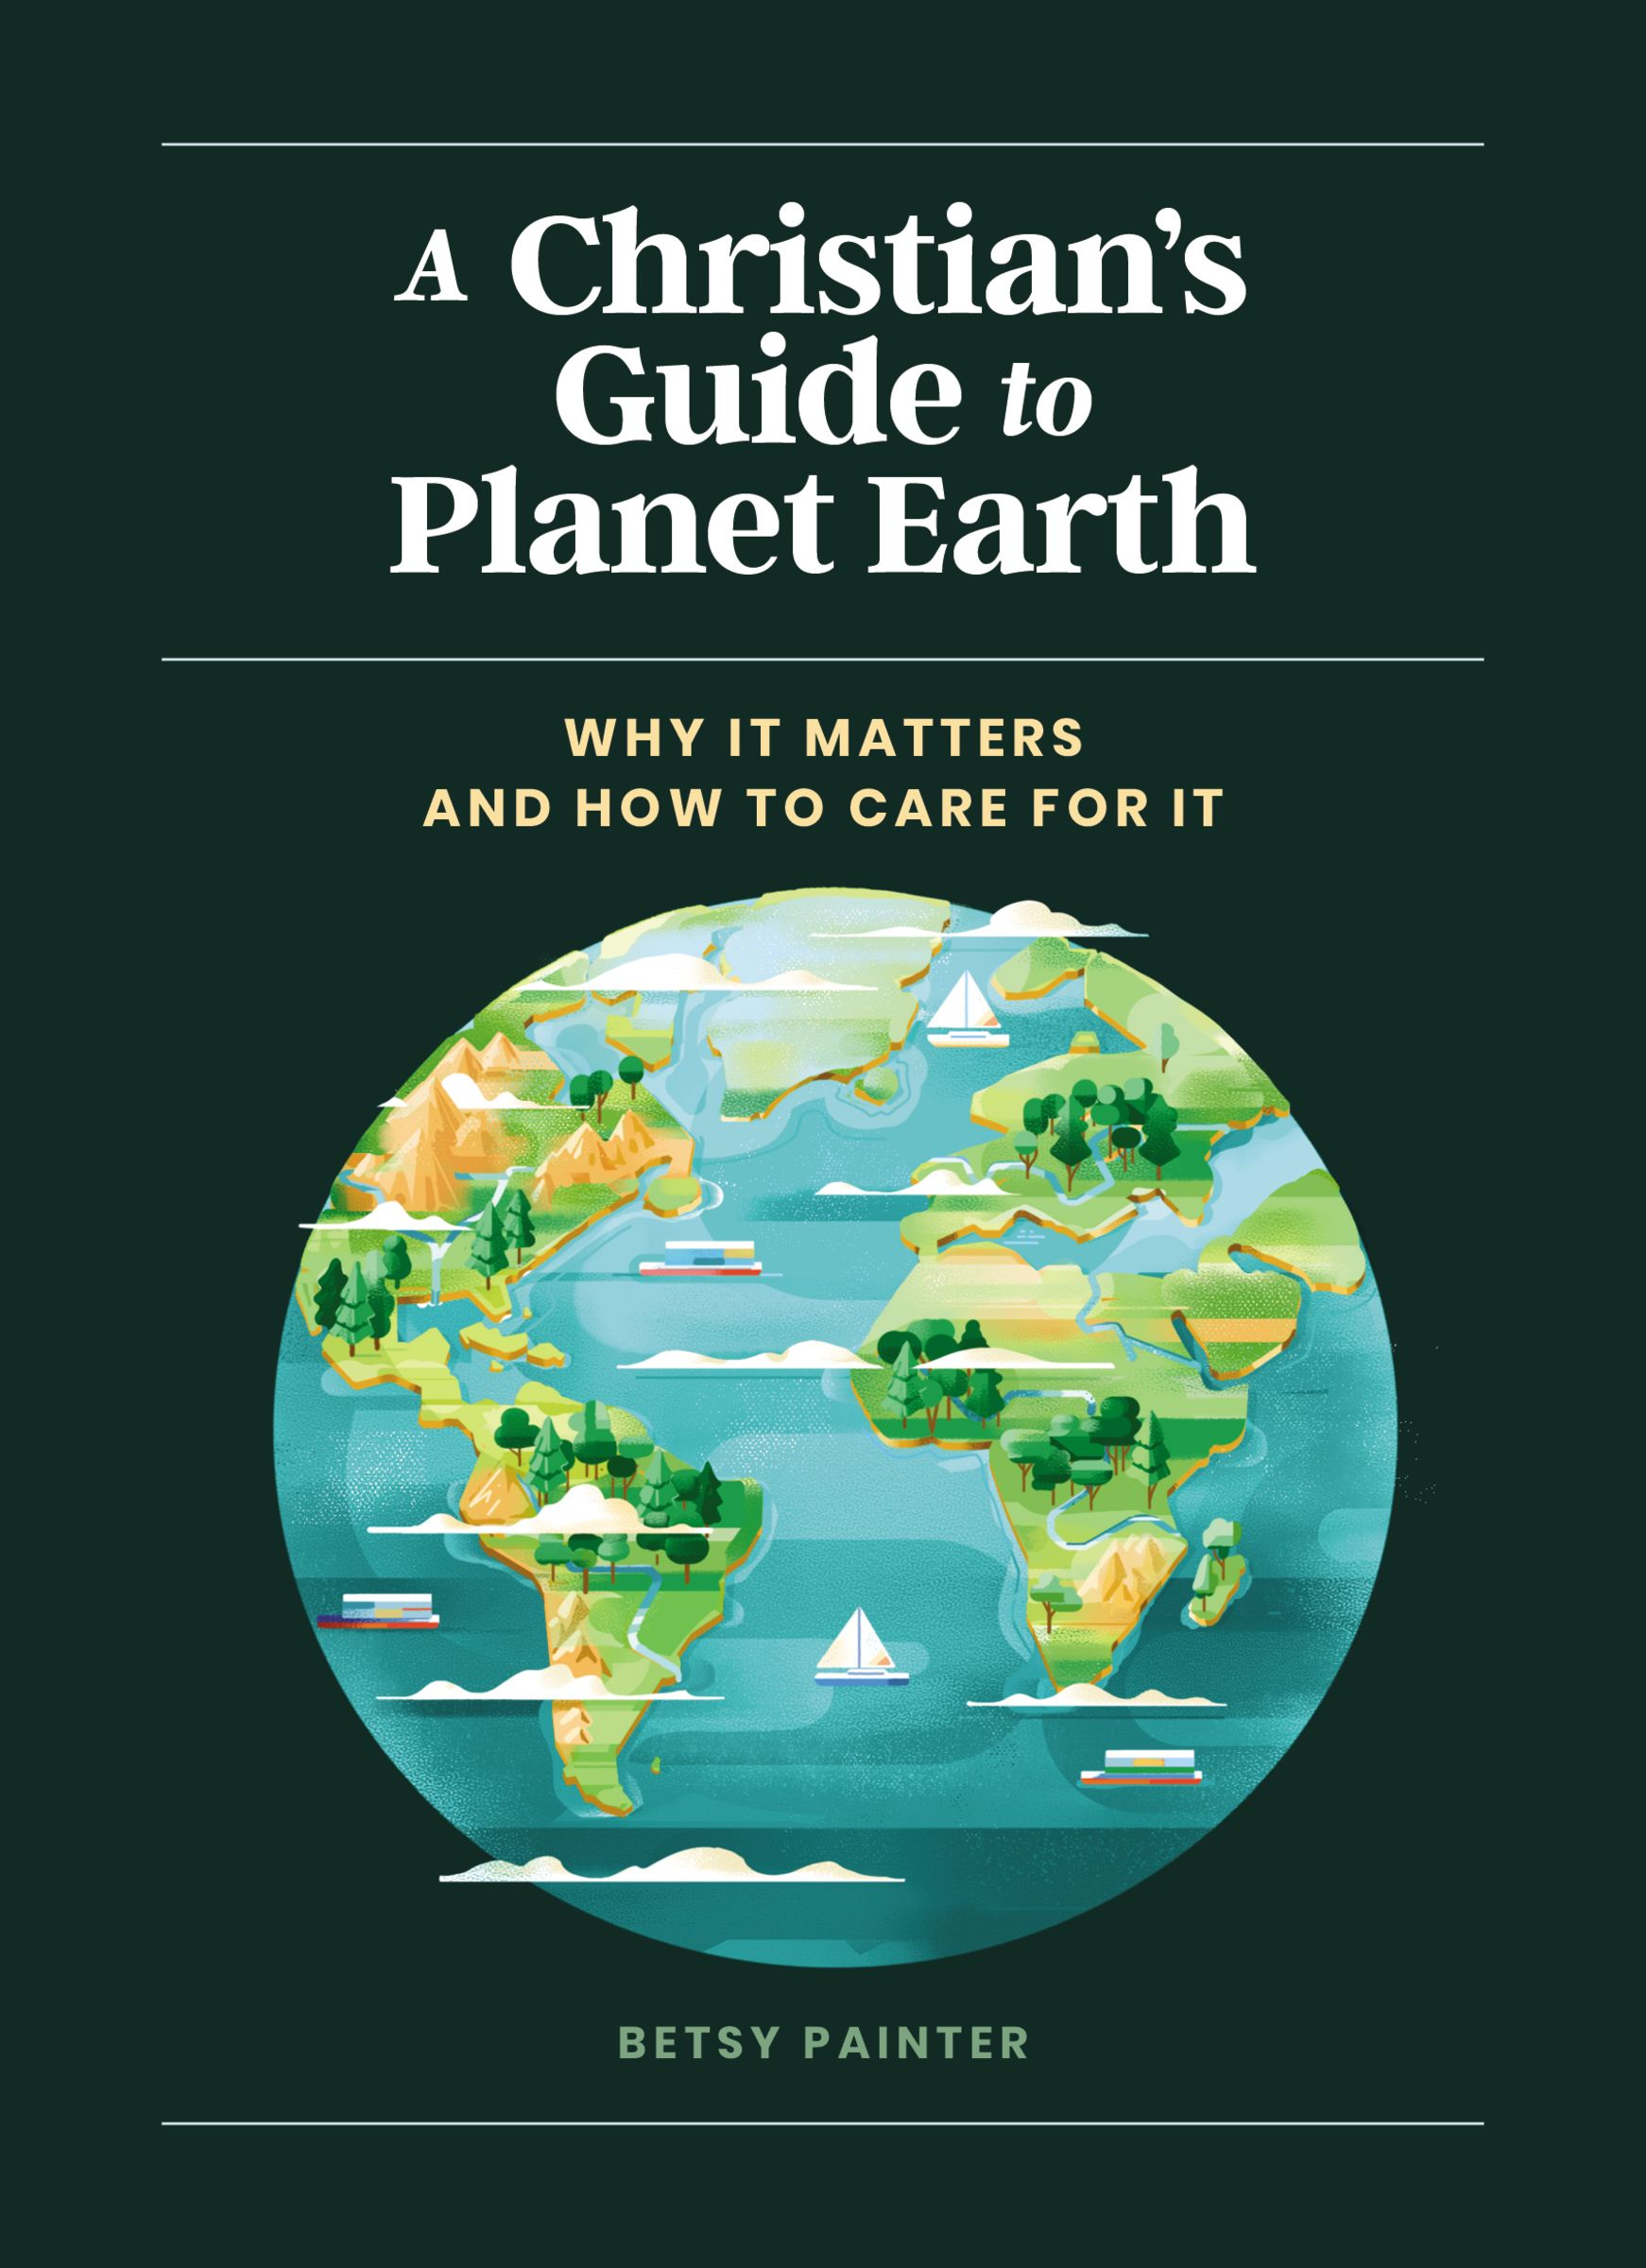 A Christian's Guide to Planet Earth